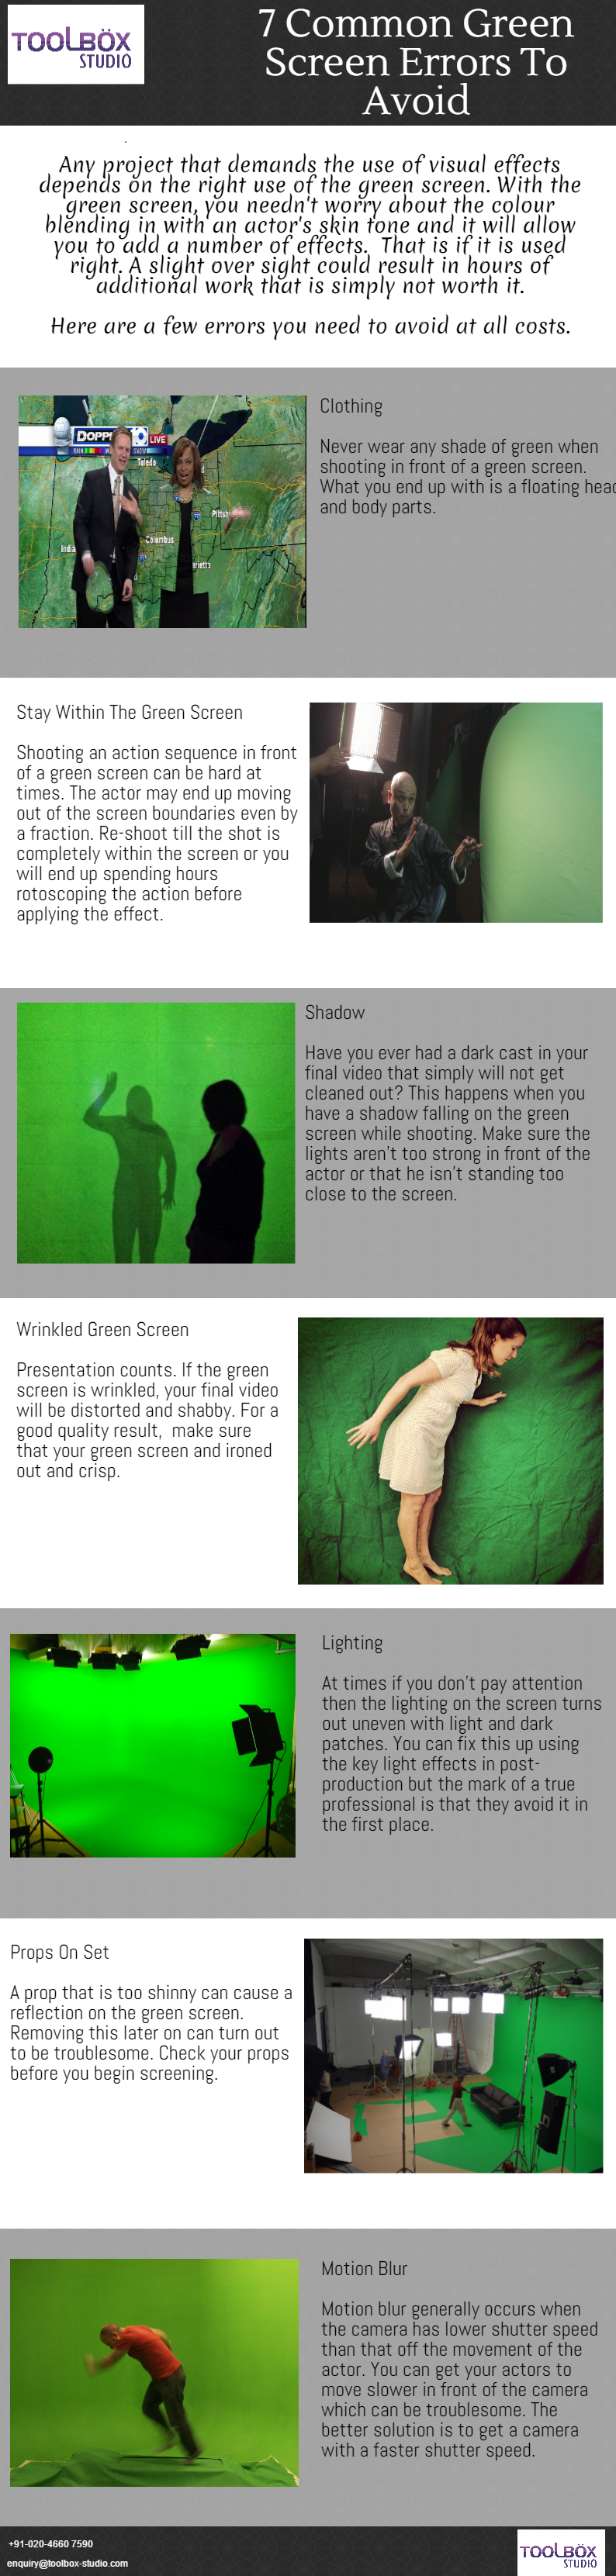 visual effects, green screen errors to avoid